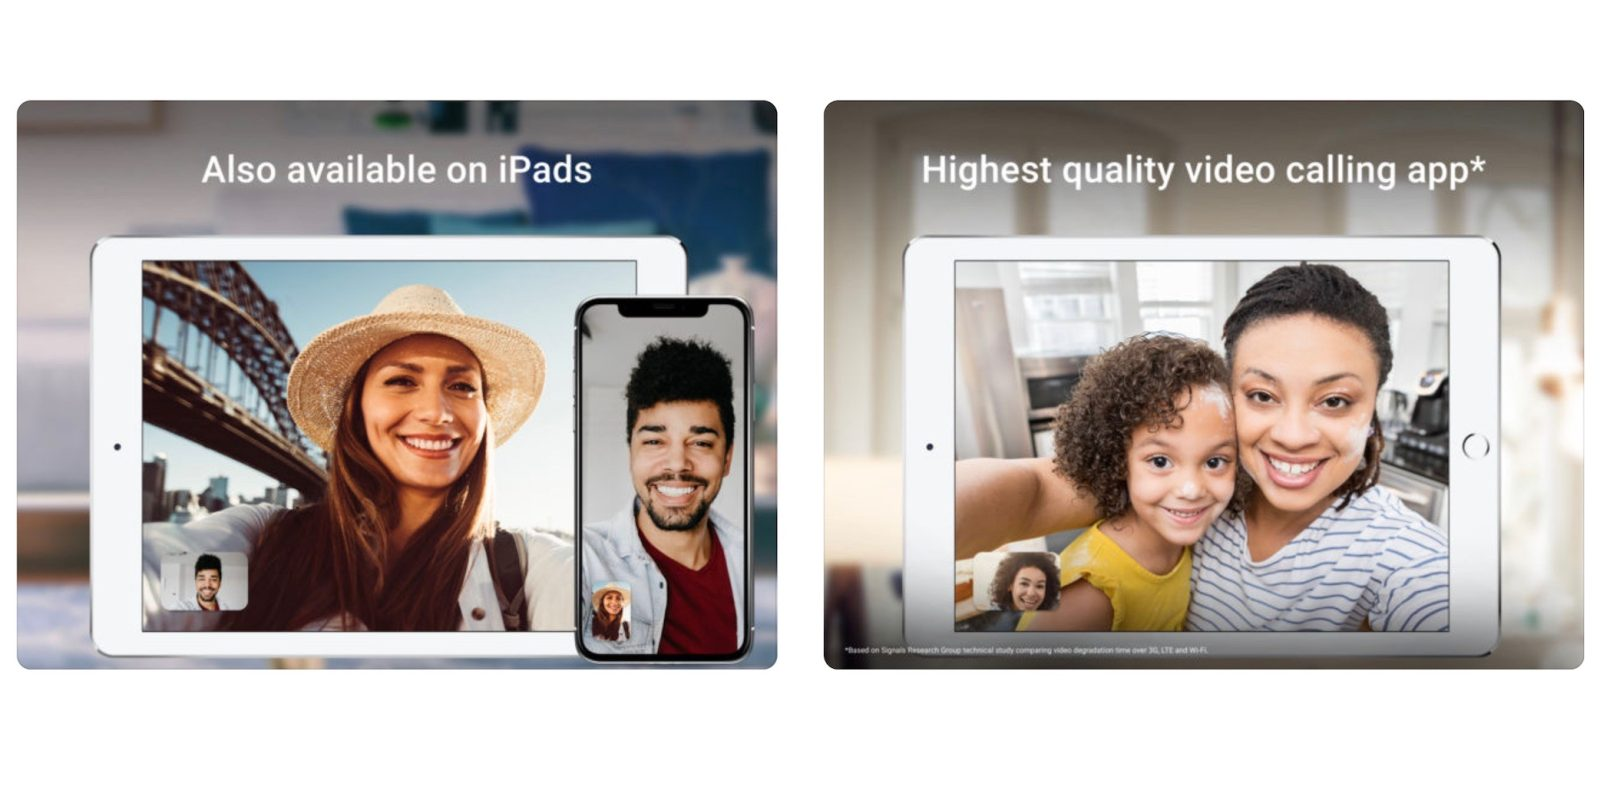 Google adds iPad support to its video calling FaceTime